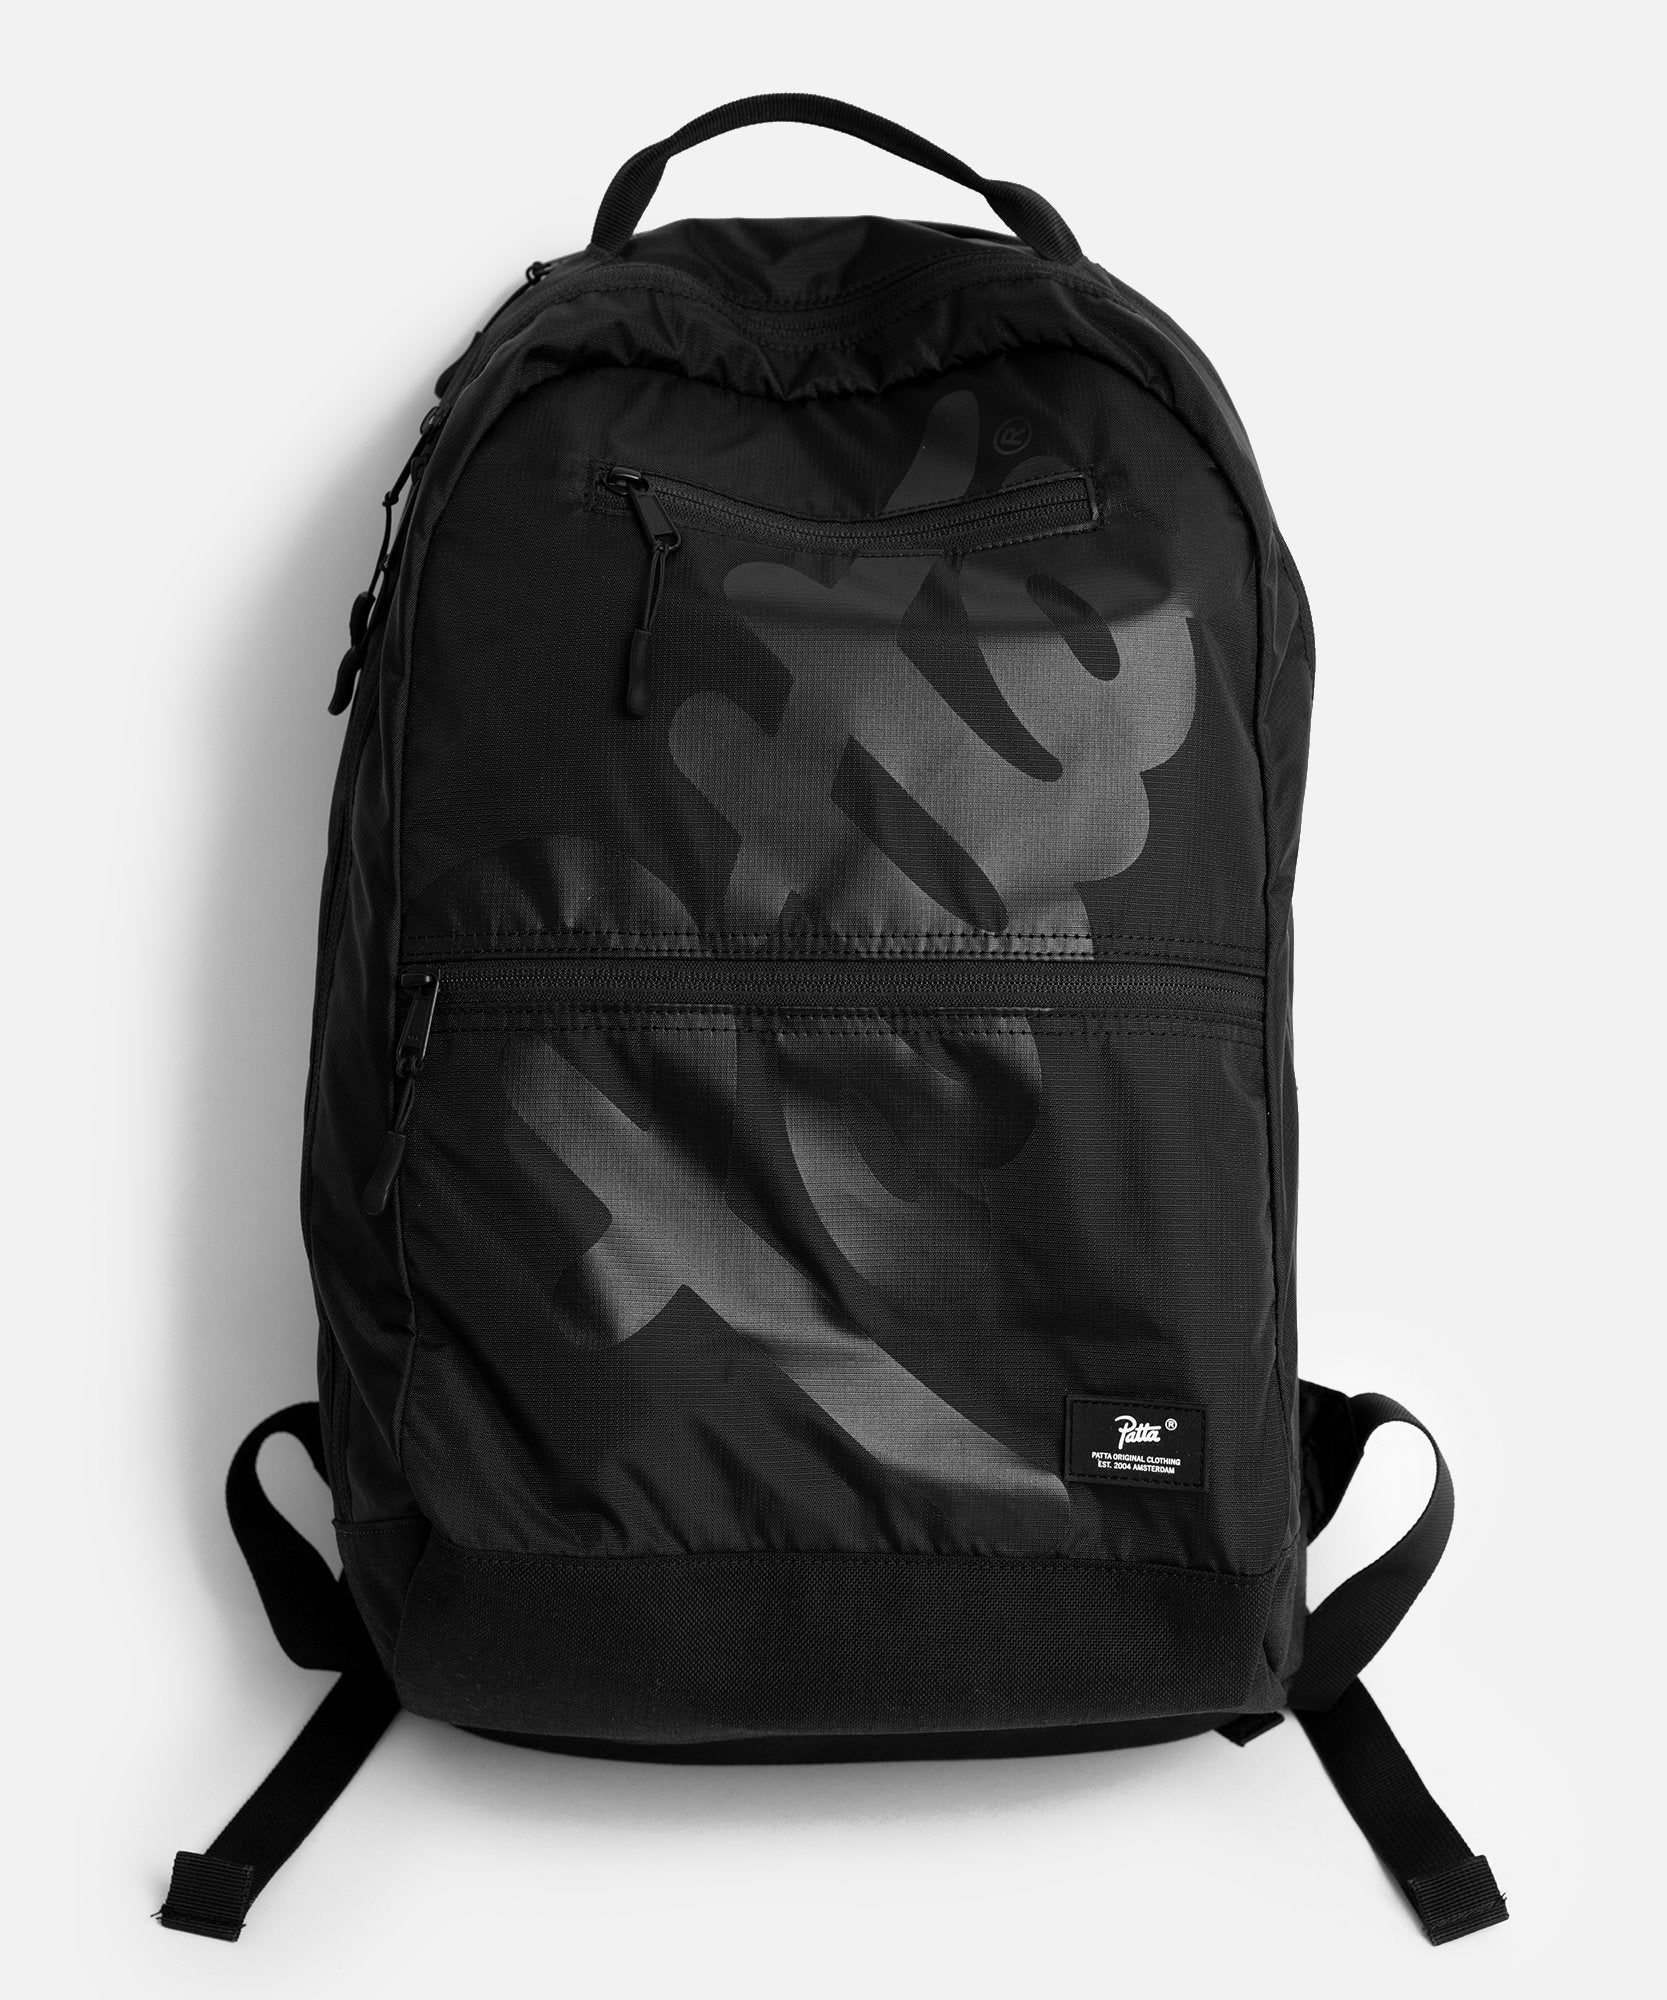 Patta Ripstop Storm Backpack (Black)